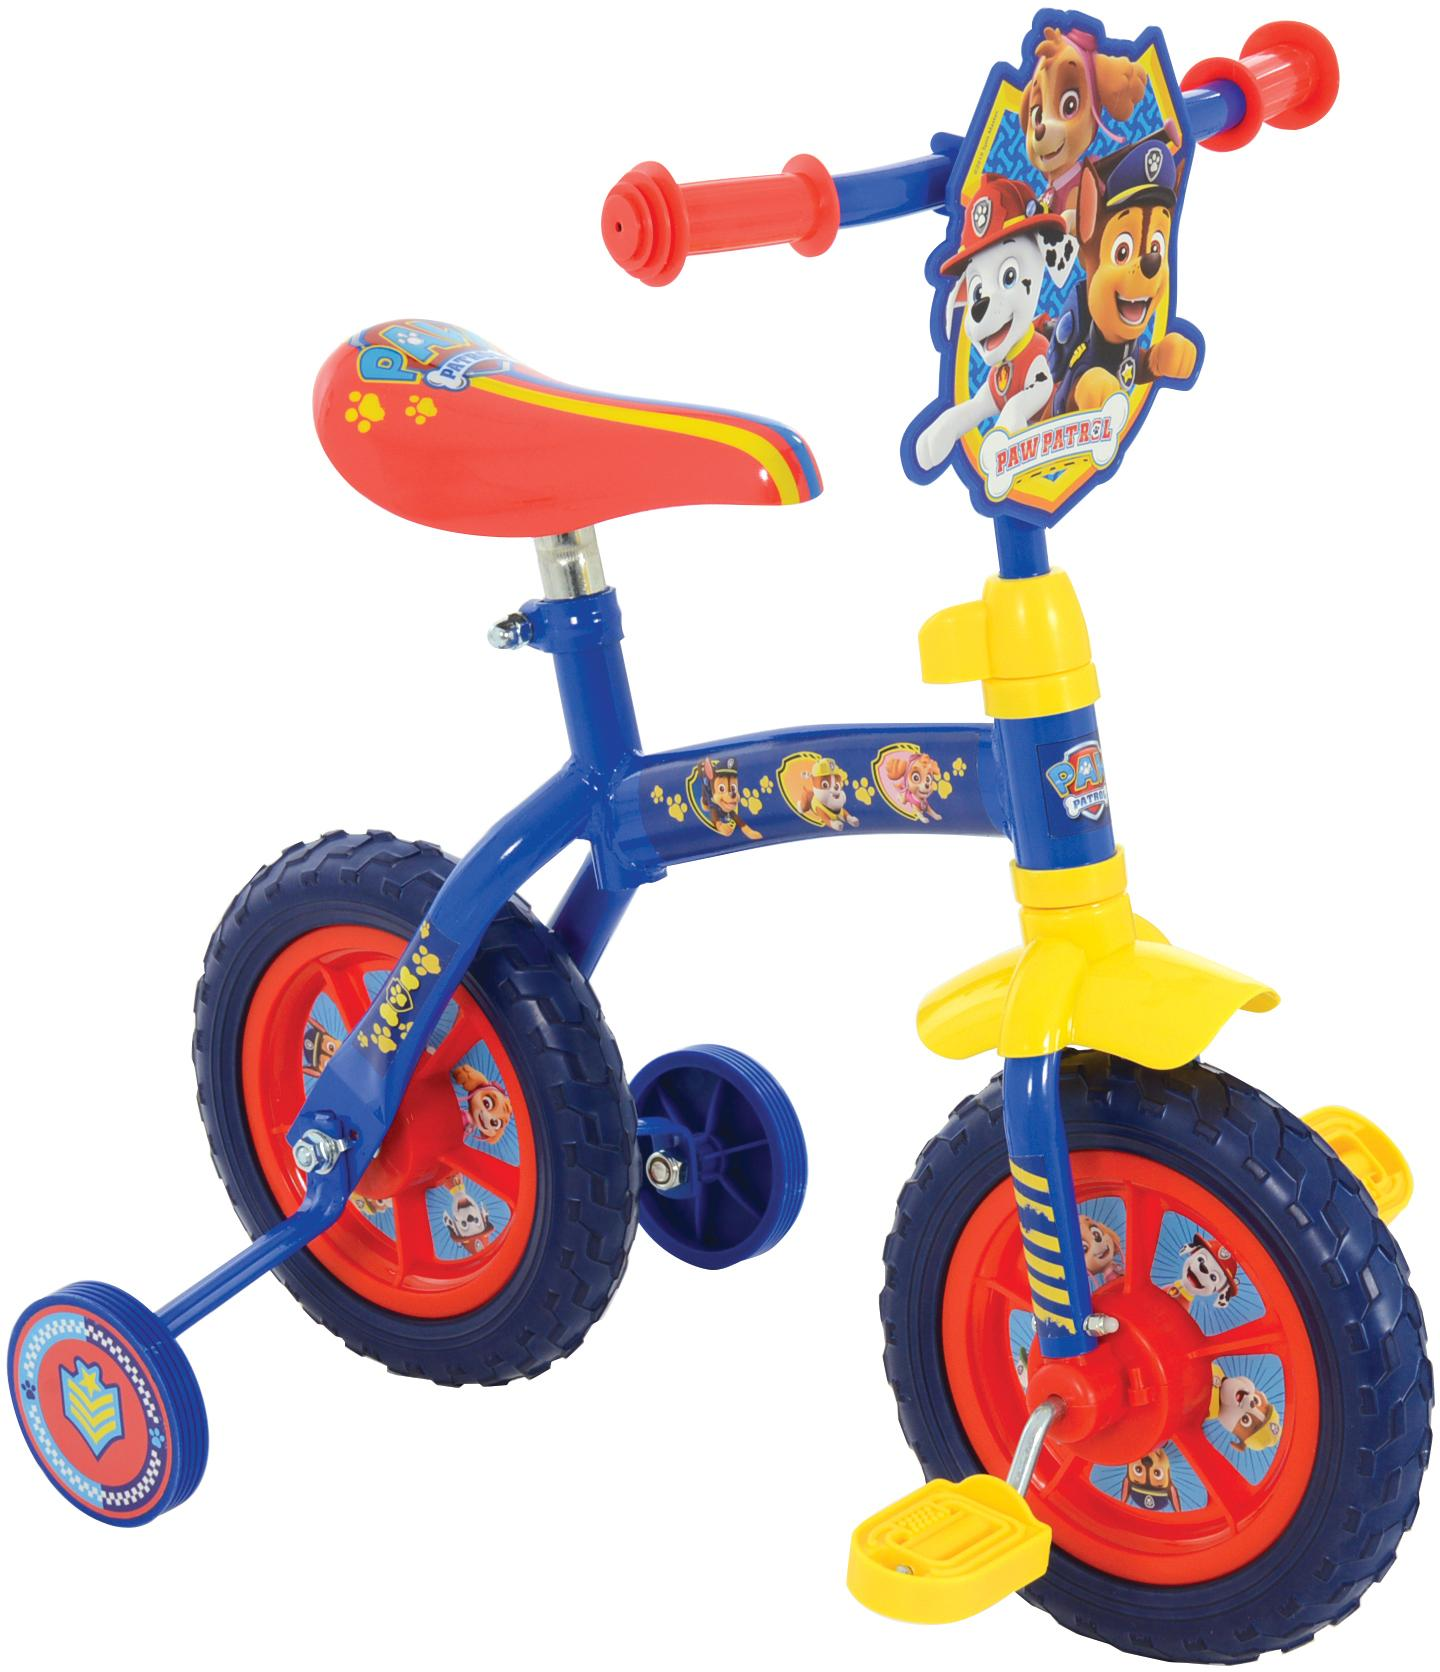 Paw Patrol 2in1 Training Bike - 10 inch Wheel